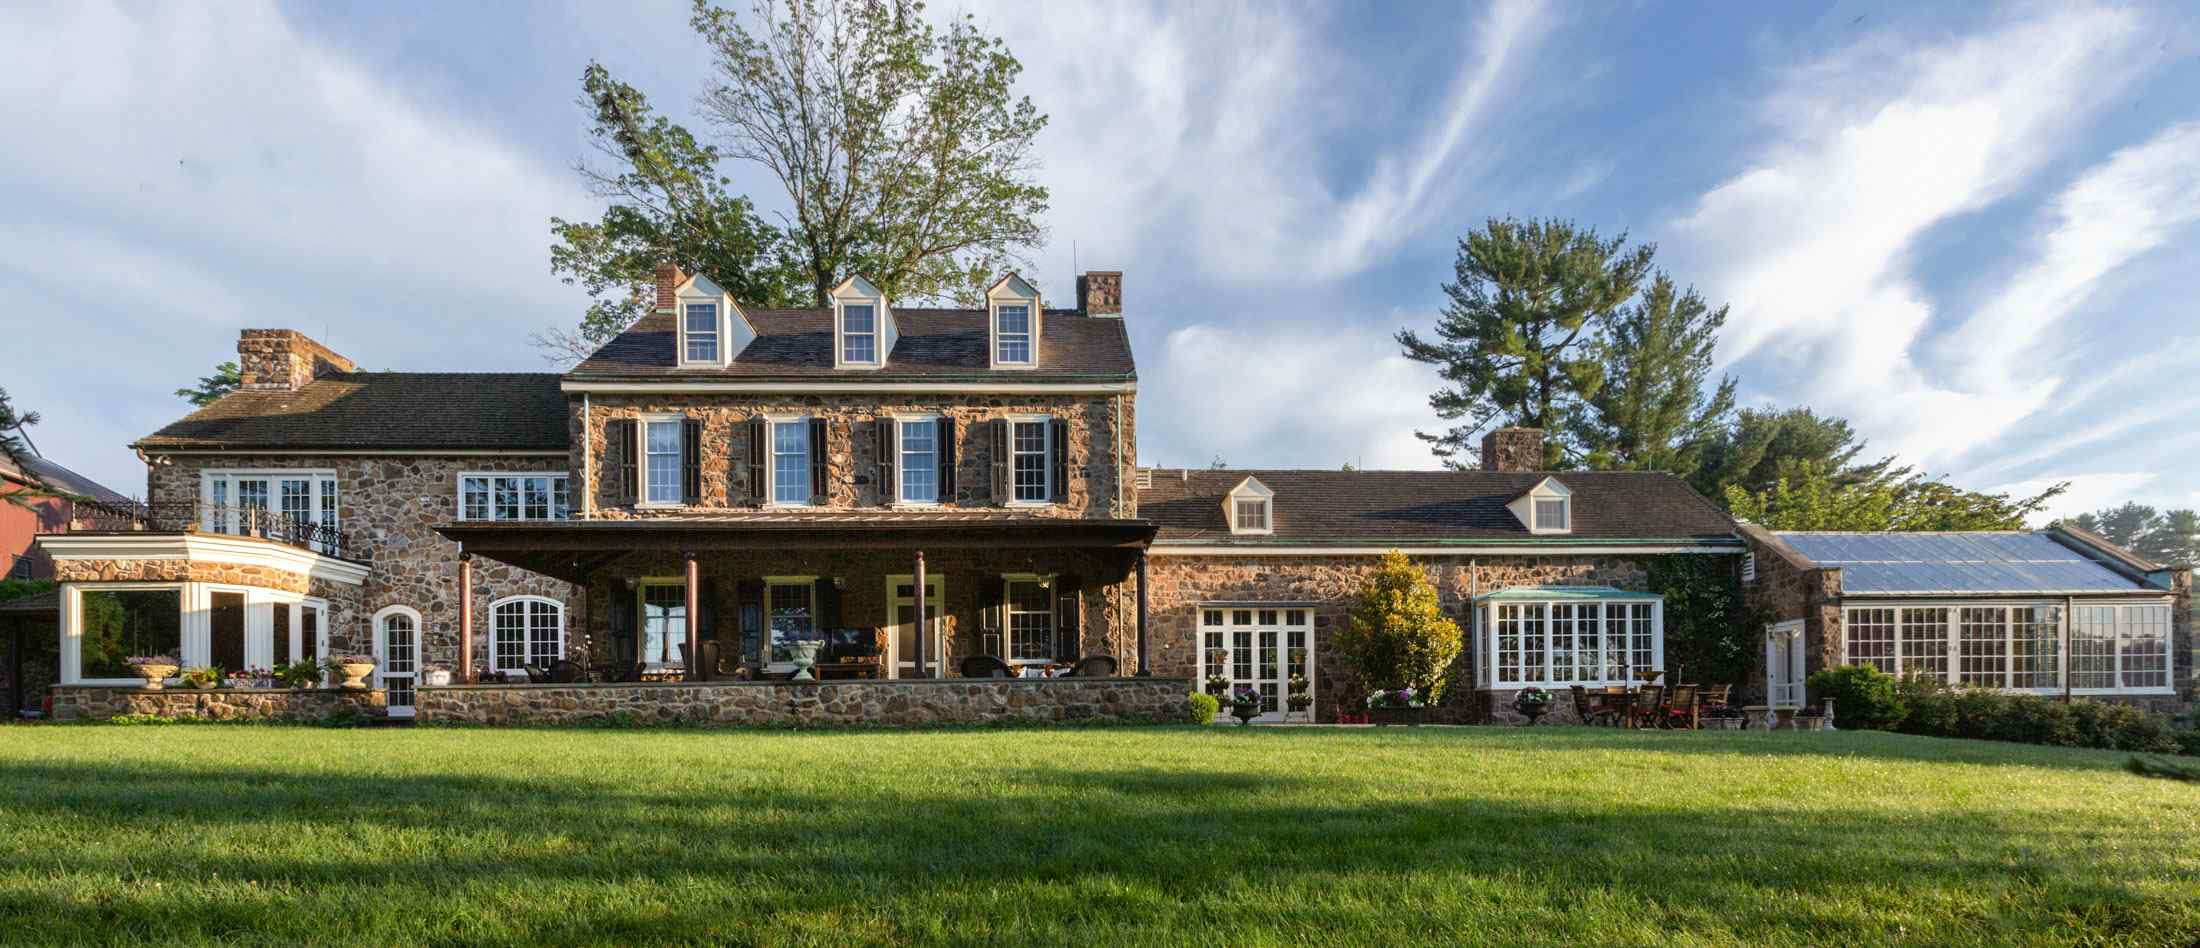 This 18th Century Manor House Would Fit Right In on the Main Line, but It's in Newtown Square